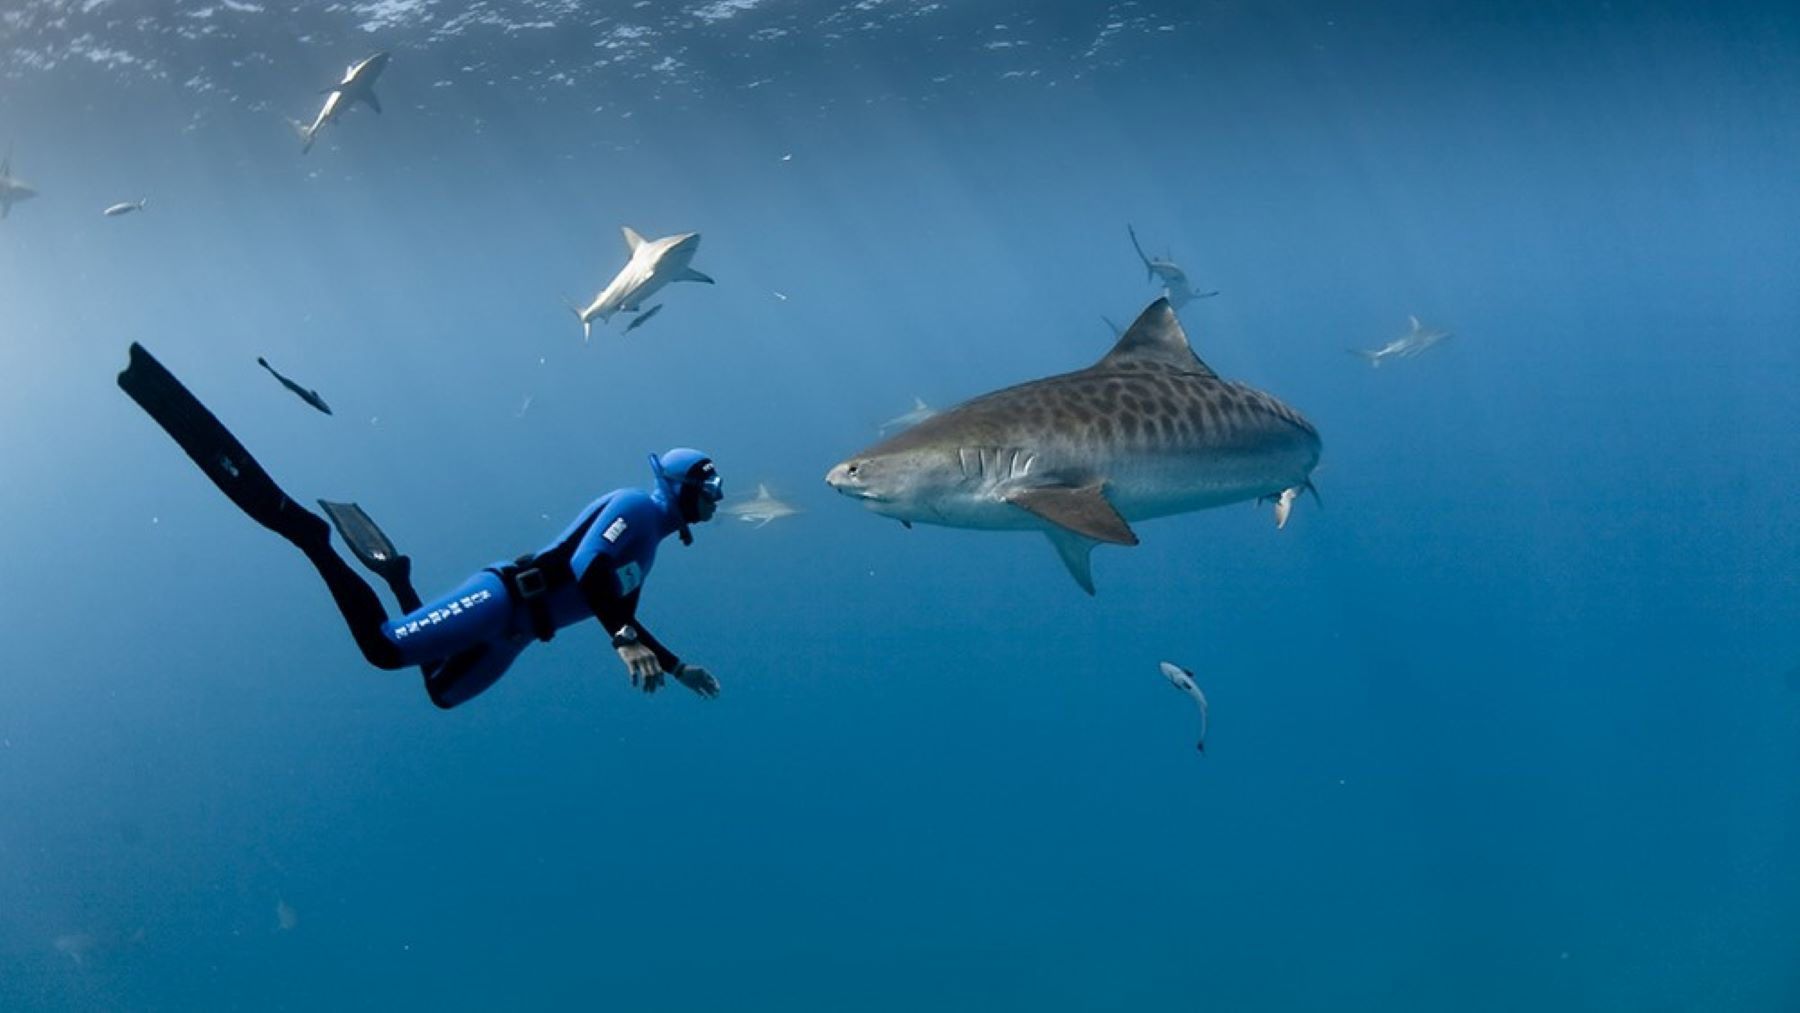 Skills you need to work with sharks